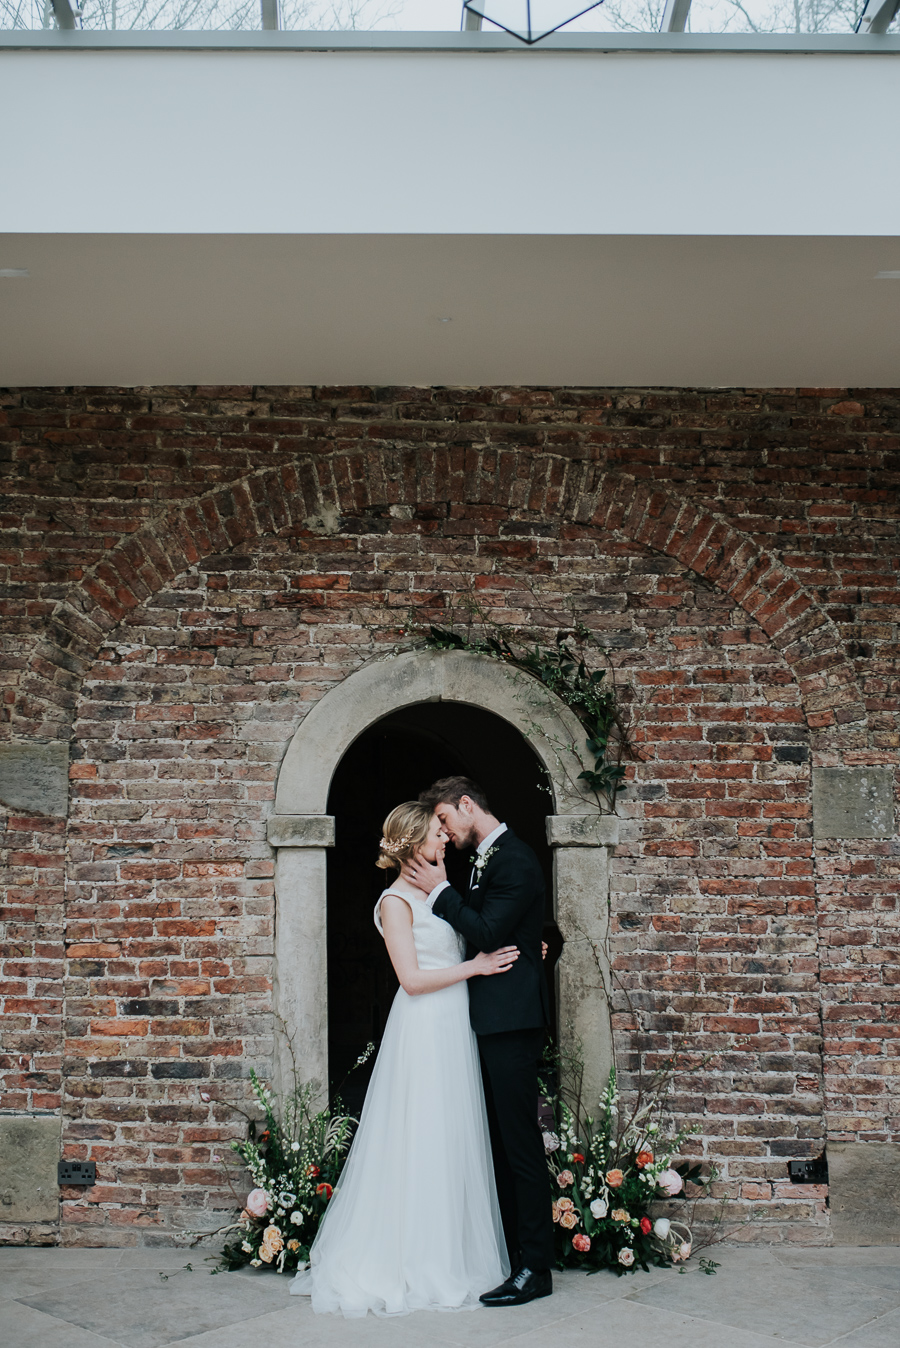 Michelle Cordner Photography on the English Wedding Blog (28)